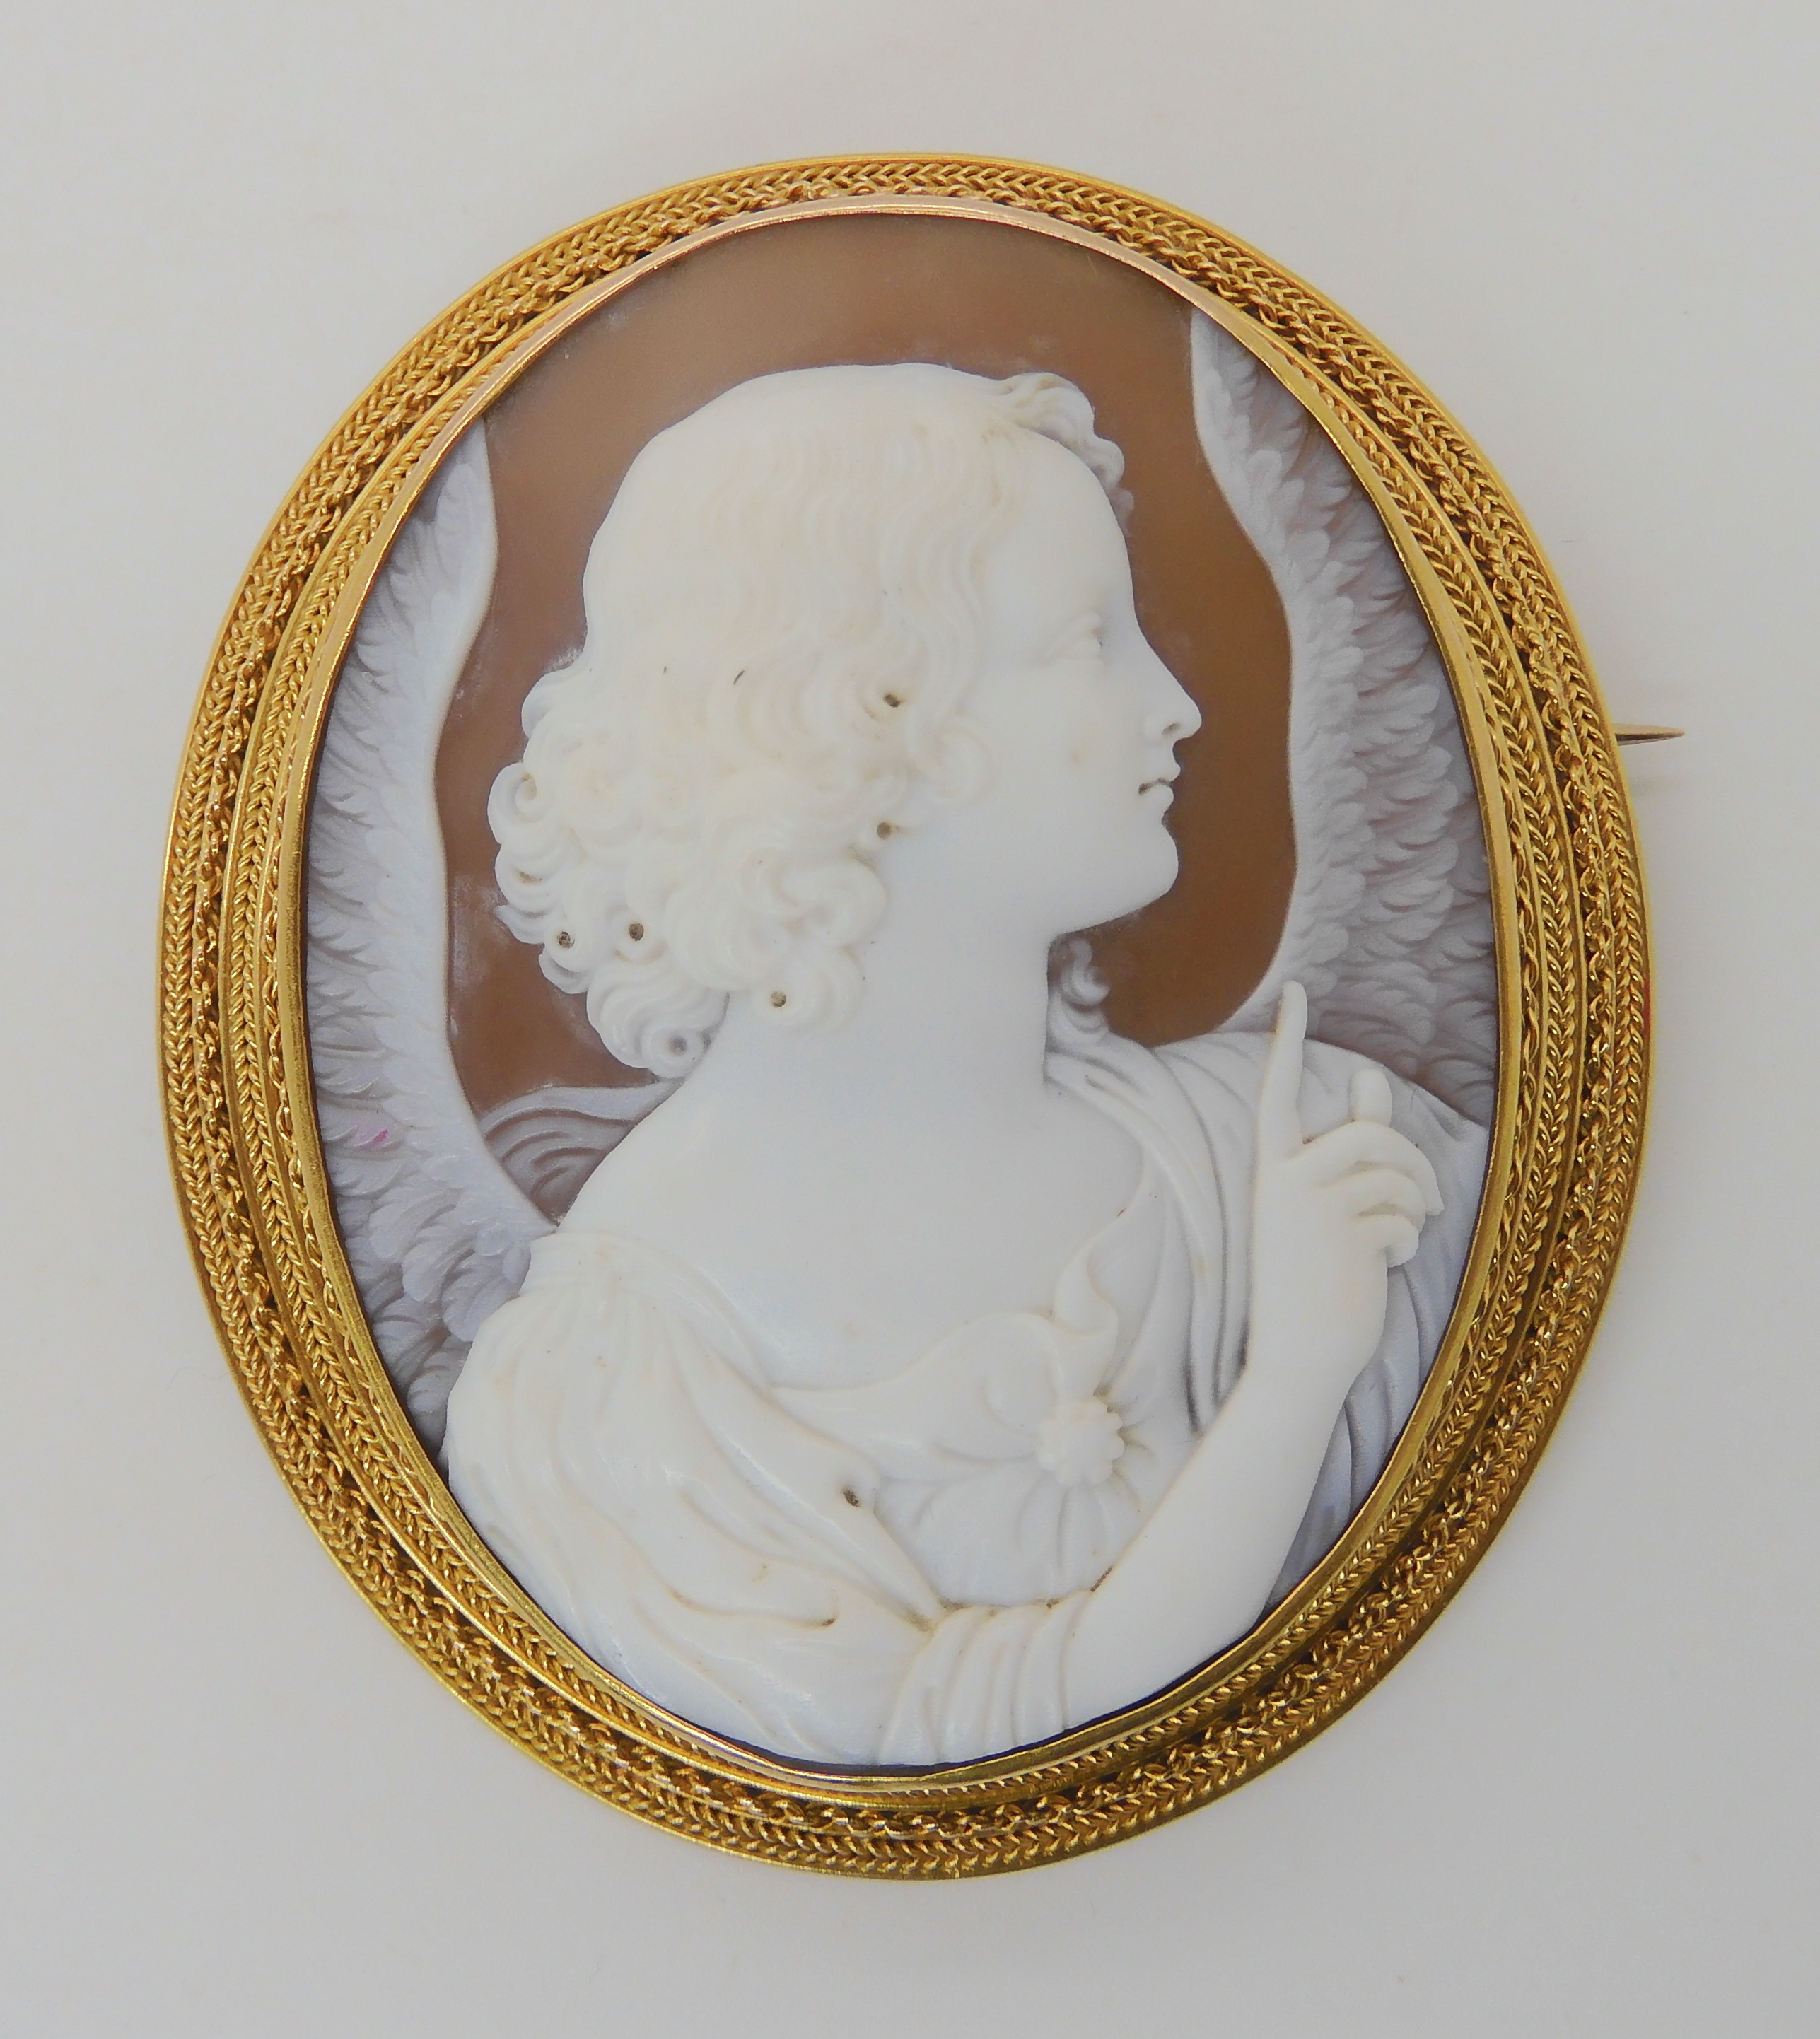 A LARGE FINE SHELL CAMEO OF AN ANGEL in a bright yellow metal rope wirework mount. Dimensions 6.